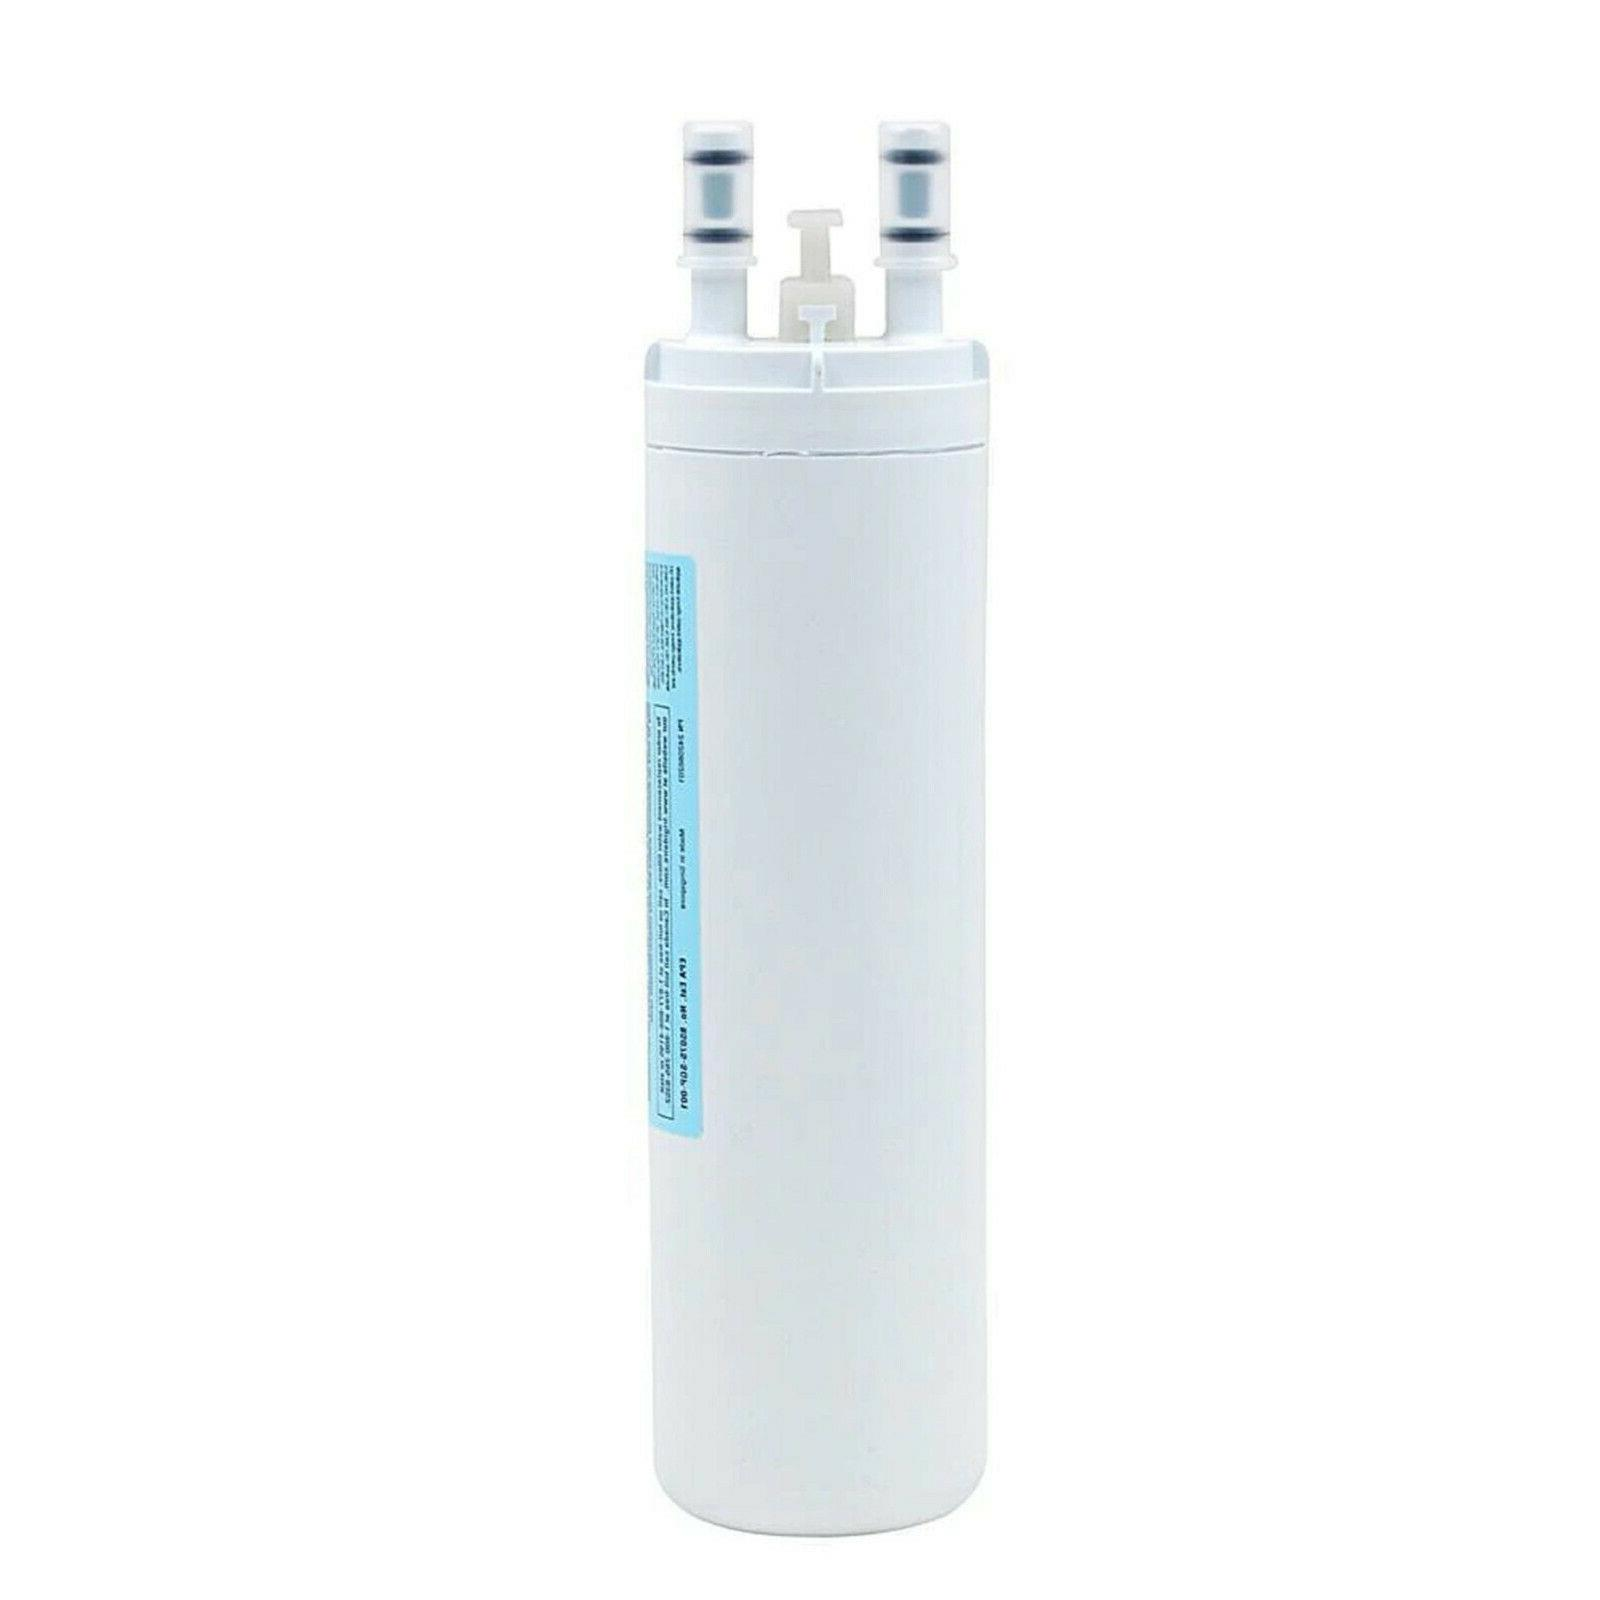 1 Pack Water Filter Fits Kenmore Refrigerator